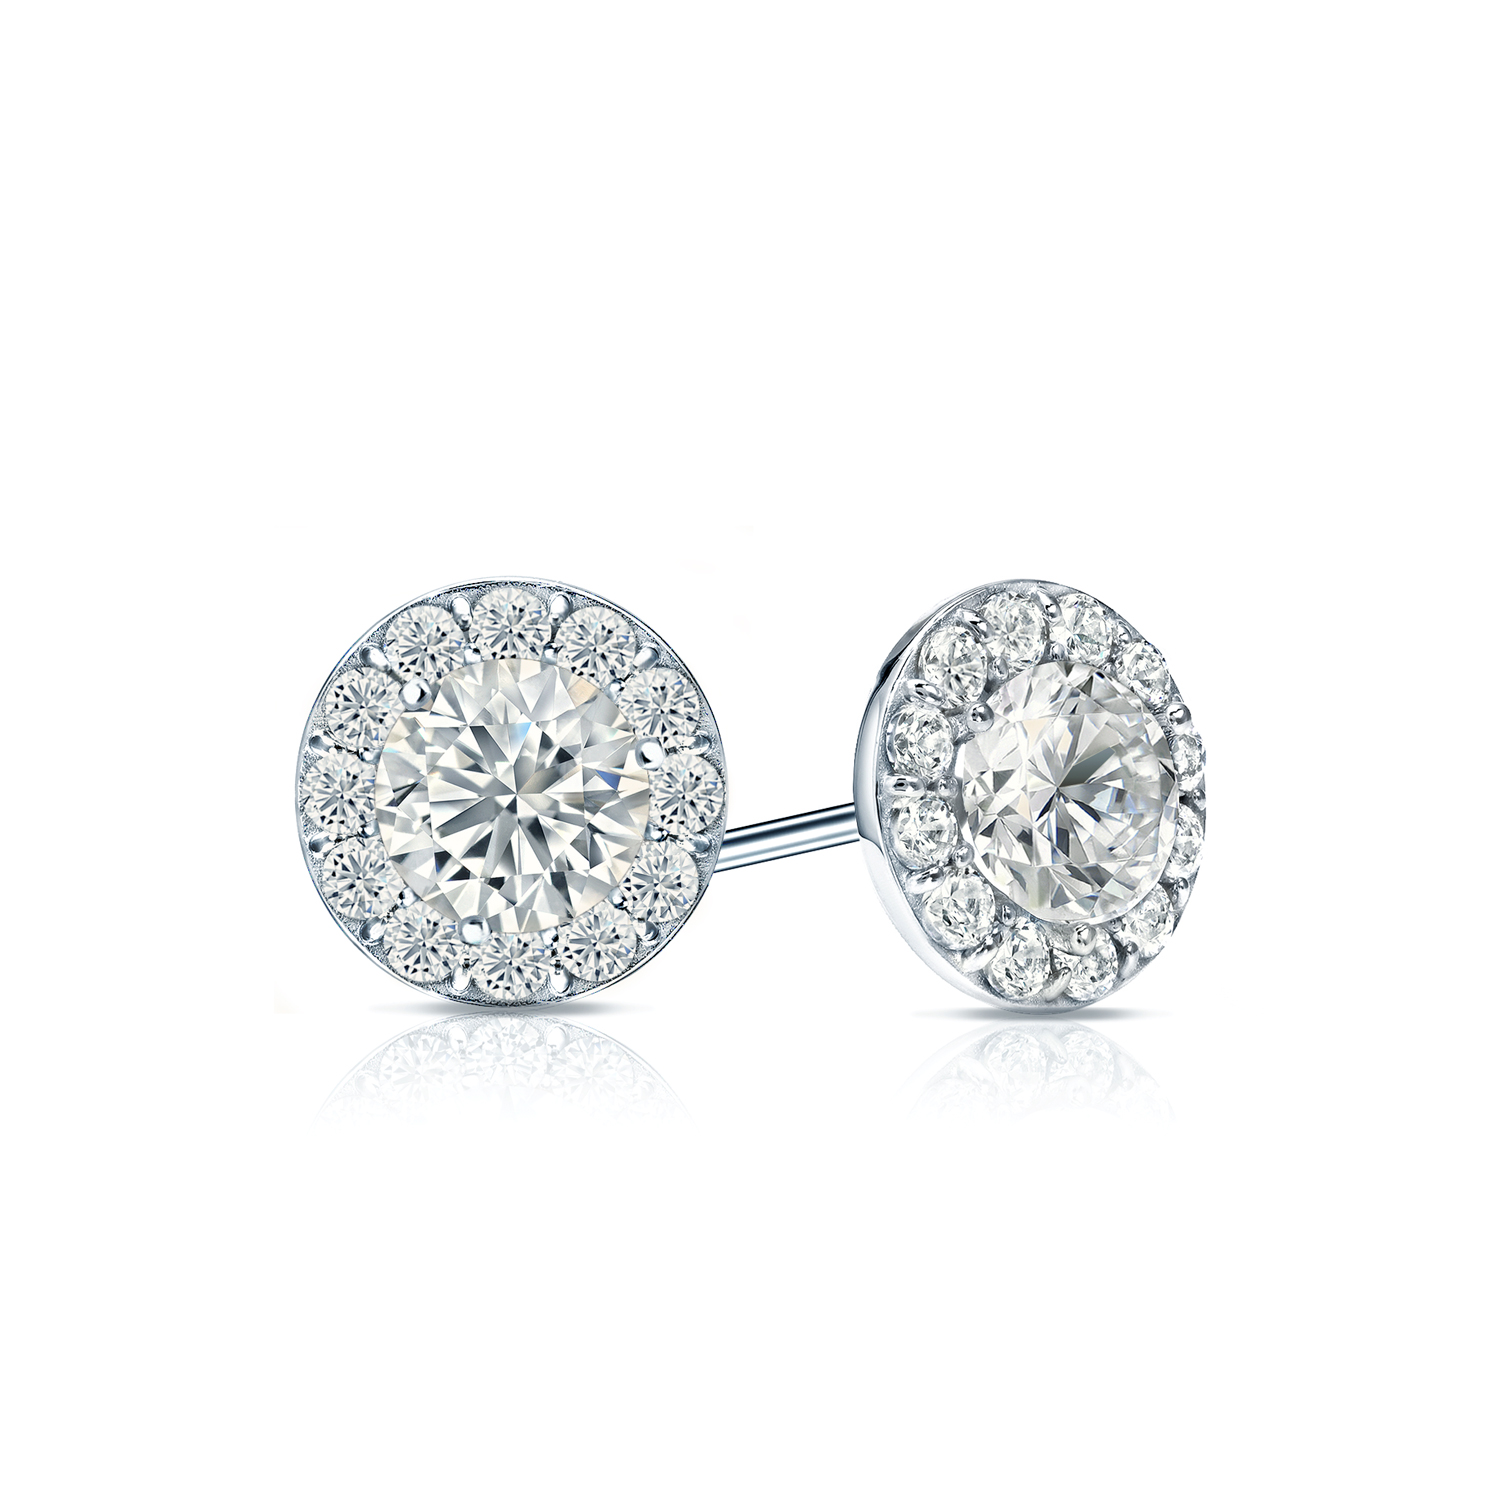 Certified 0.50 cttw Round Diamond Stud Earrings in 14k White Gold Halo (I-J, I1)